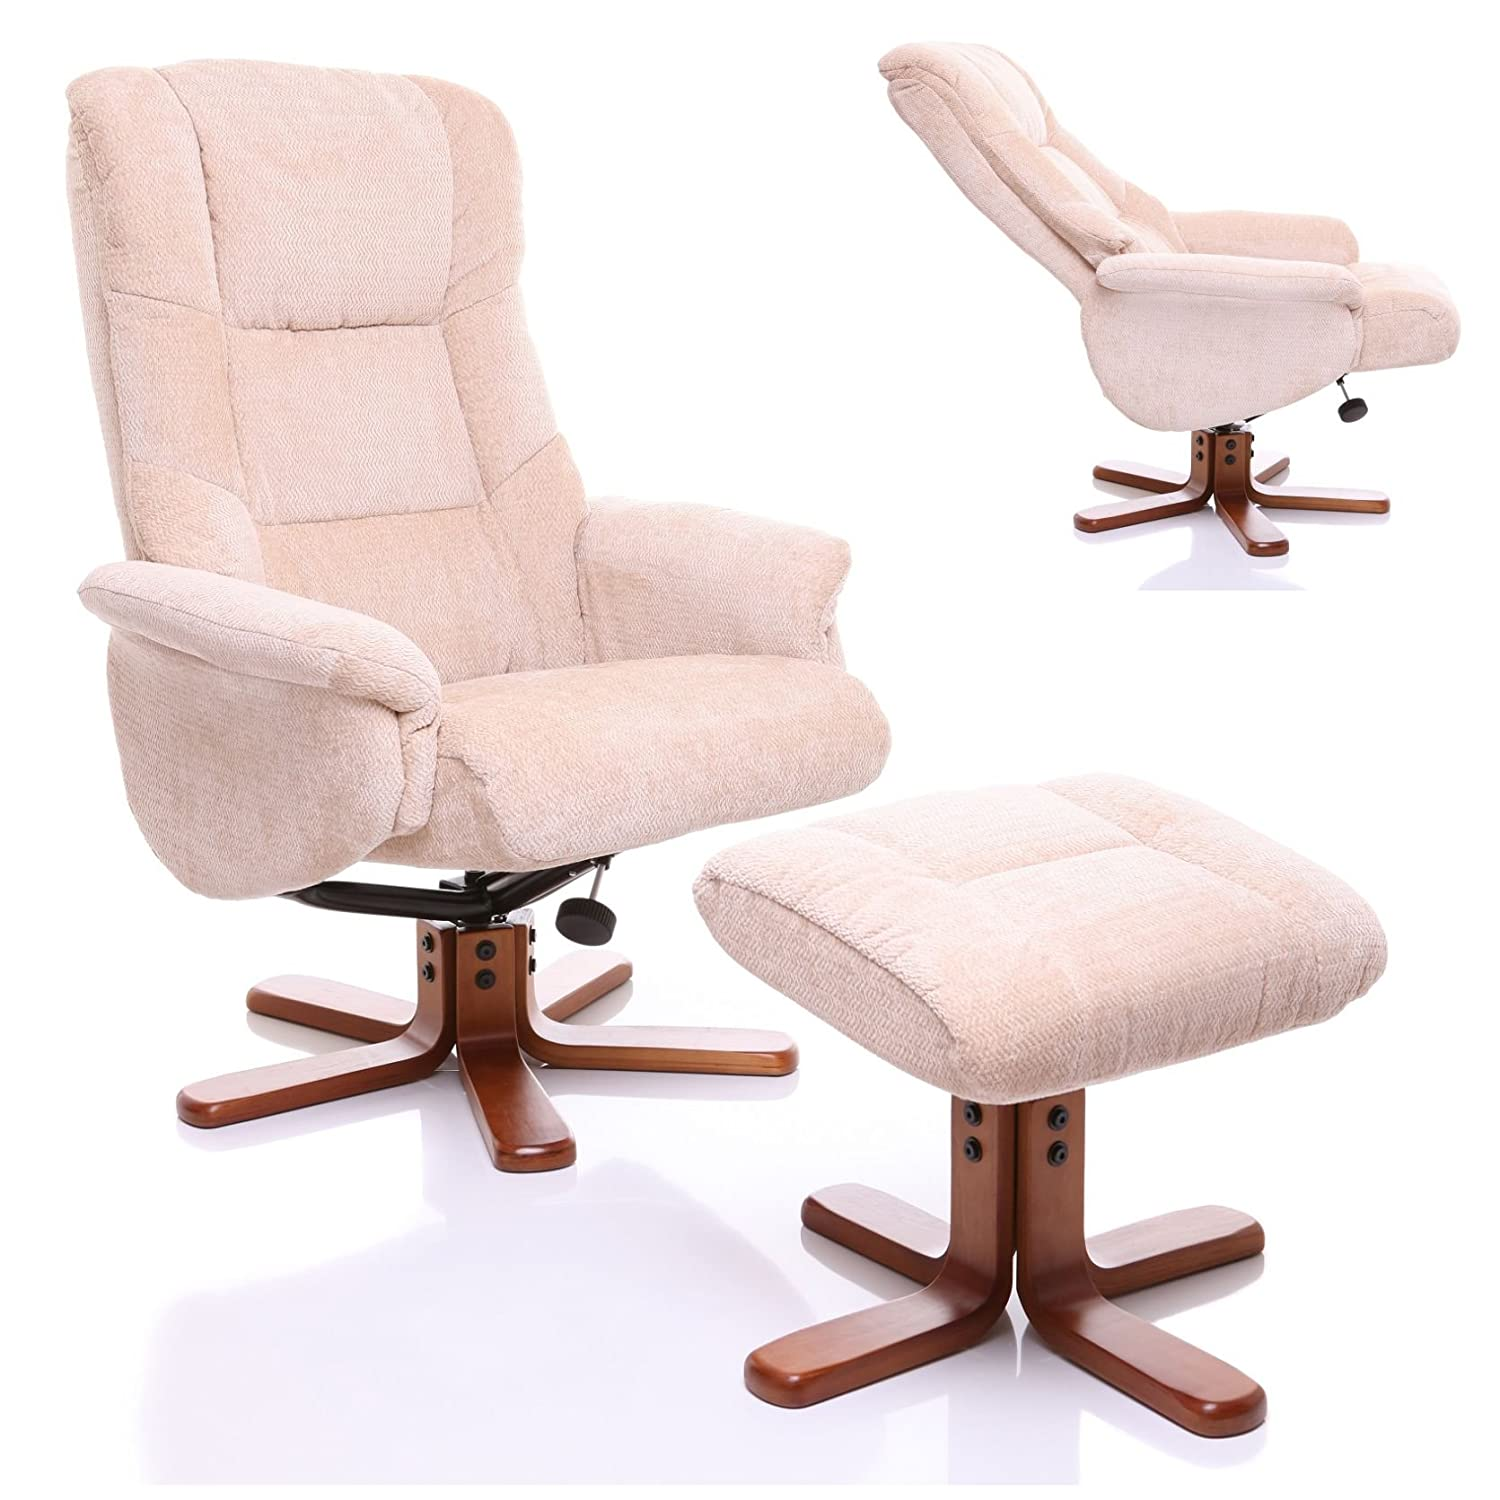 The Shangri-La - Chenille Fabric Swivel Recliner chair in Beige Amazon.co.uk Kitchen u0026 Home  sc 1 st  Amazon UK & The Shangri-La - Chenille Fabric Swivel Recliner chair in Beige ... islam-shia.org